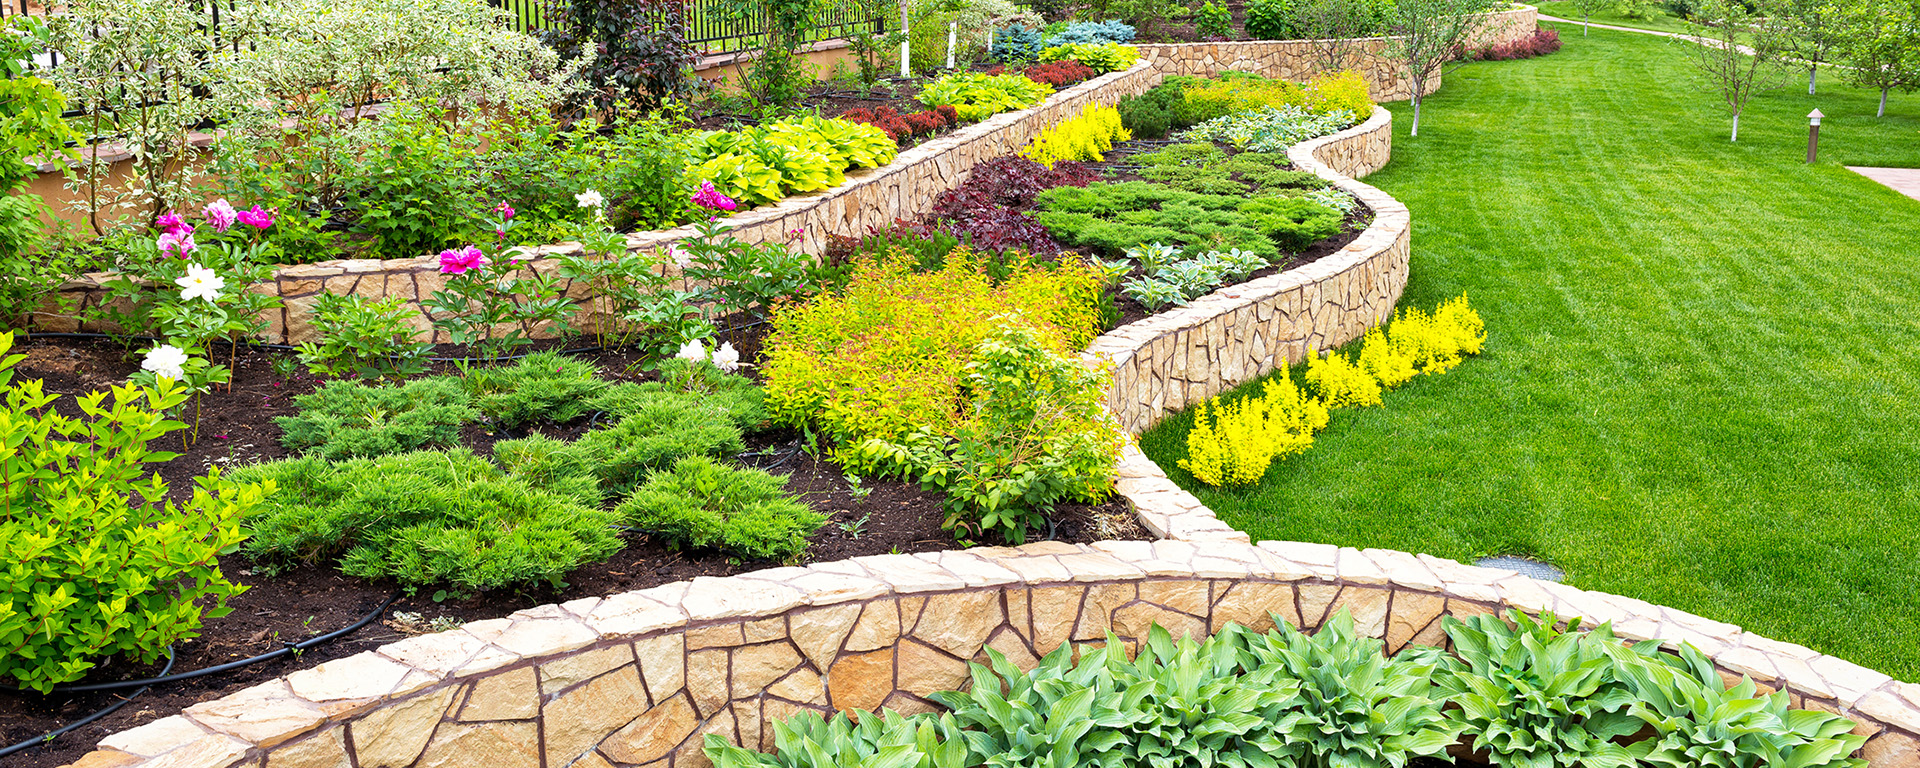 Beautiful back yard with retaining walls and vegetation